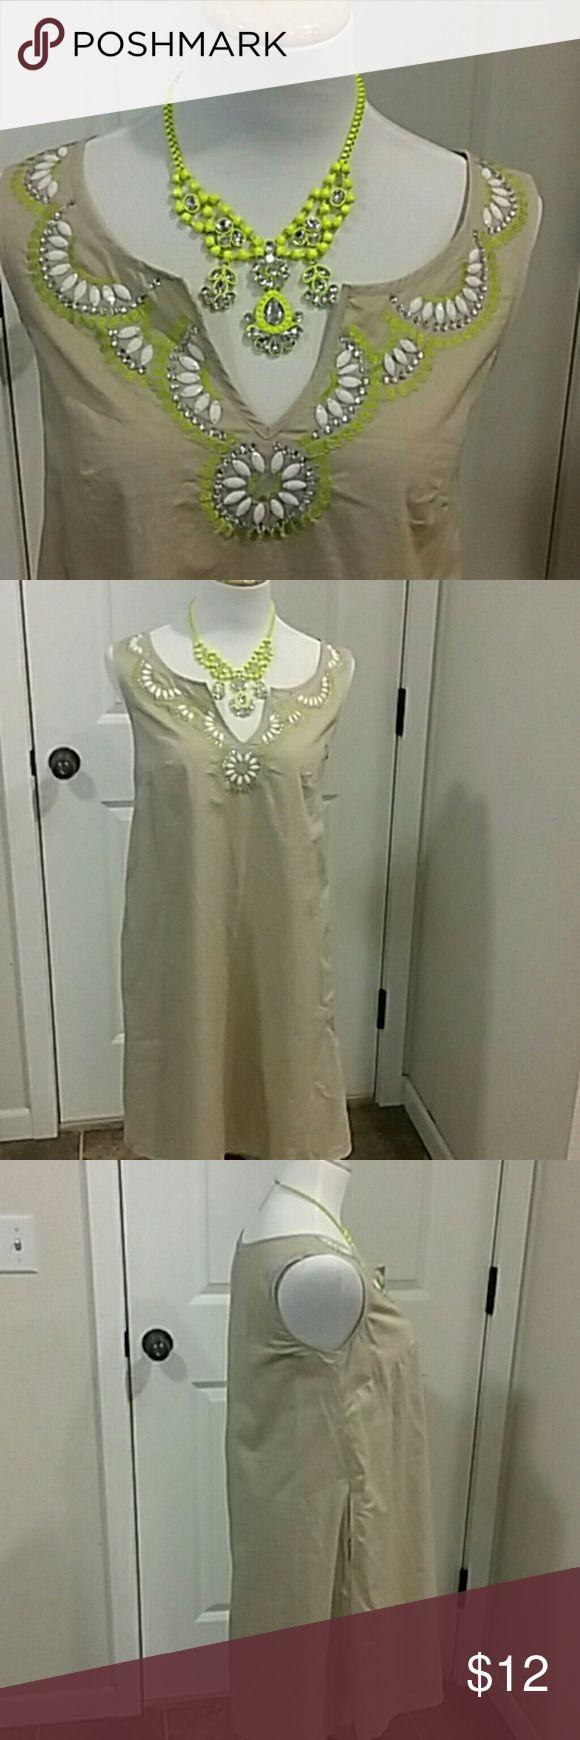 Beautiful Calypso ST Barth For Target Dress Beautiful Calypso ST Barth For Target dress Size small. Necklace not included just for styling purposes. I don't have belt. This Dress would be cute with belt for a clinched look. Calypso St. Barth Dresses Midi